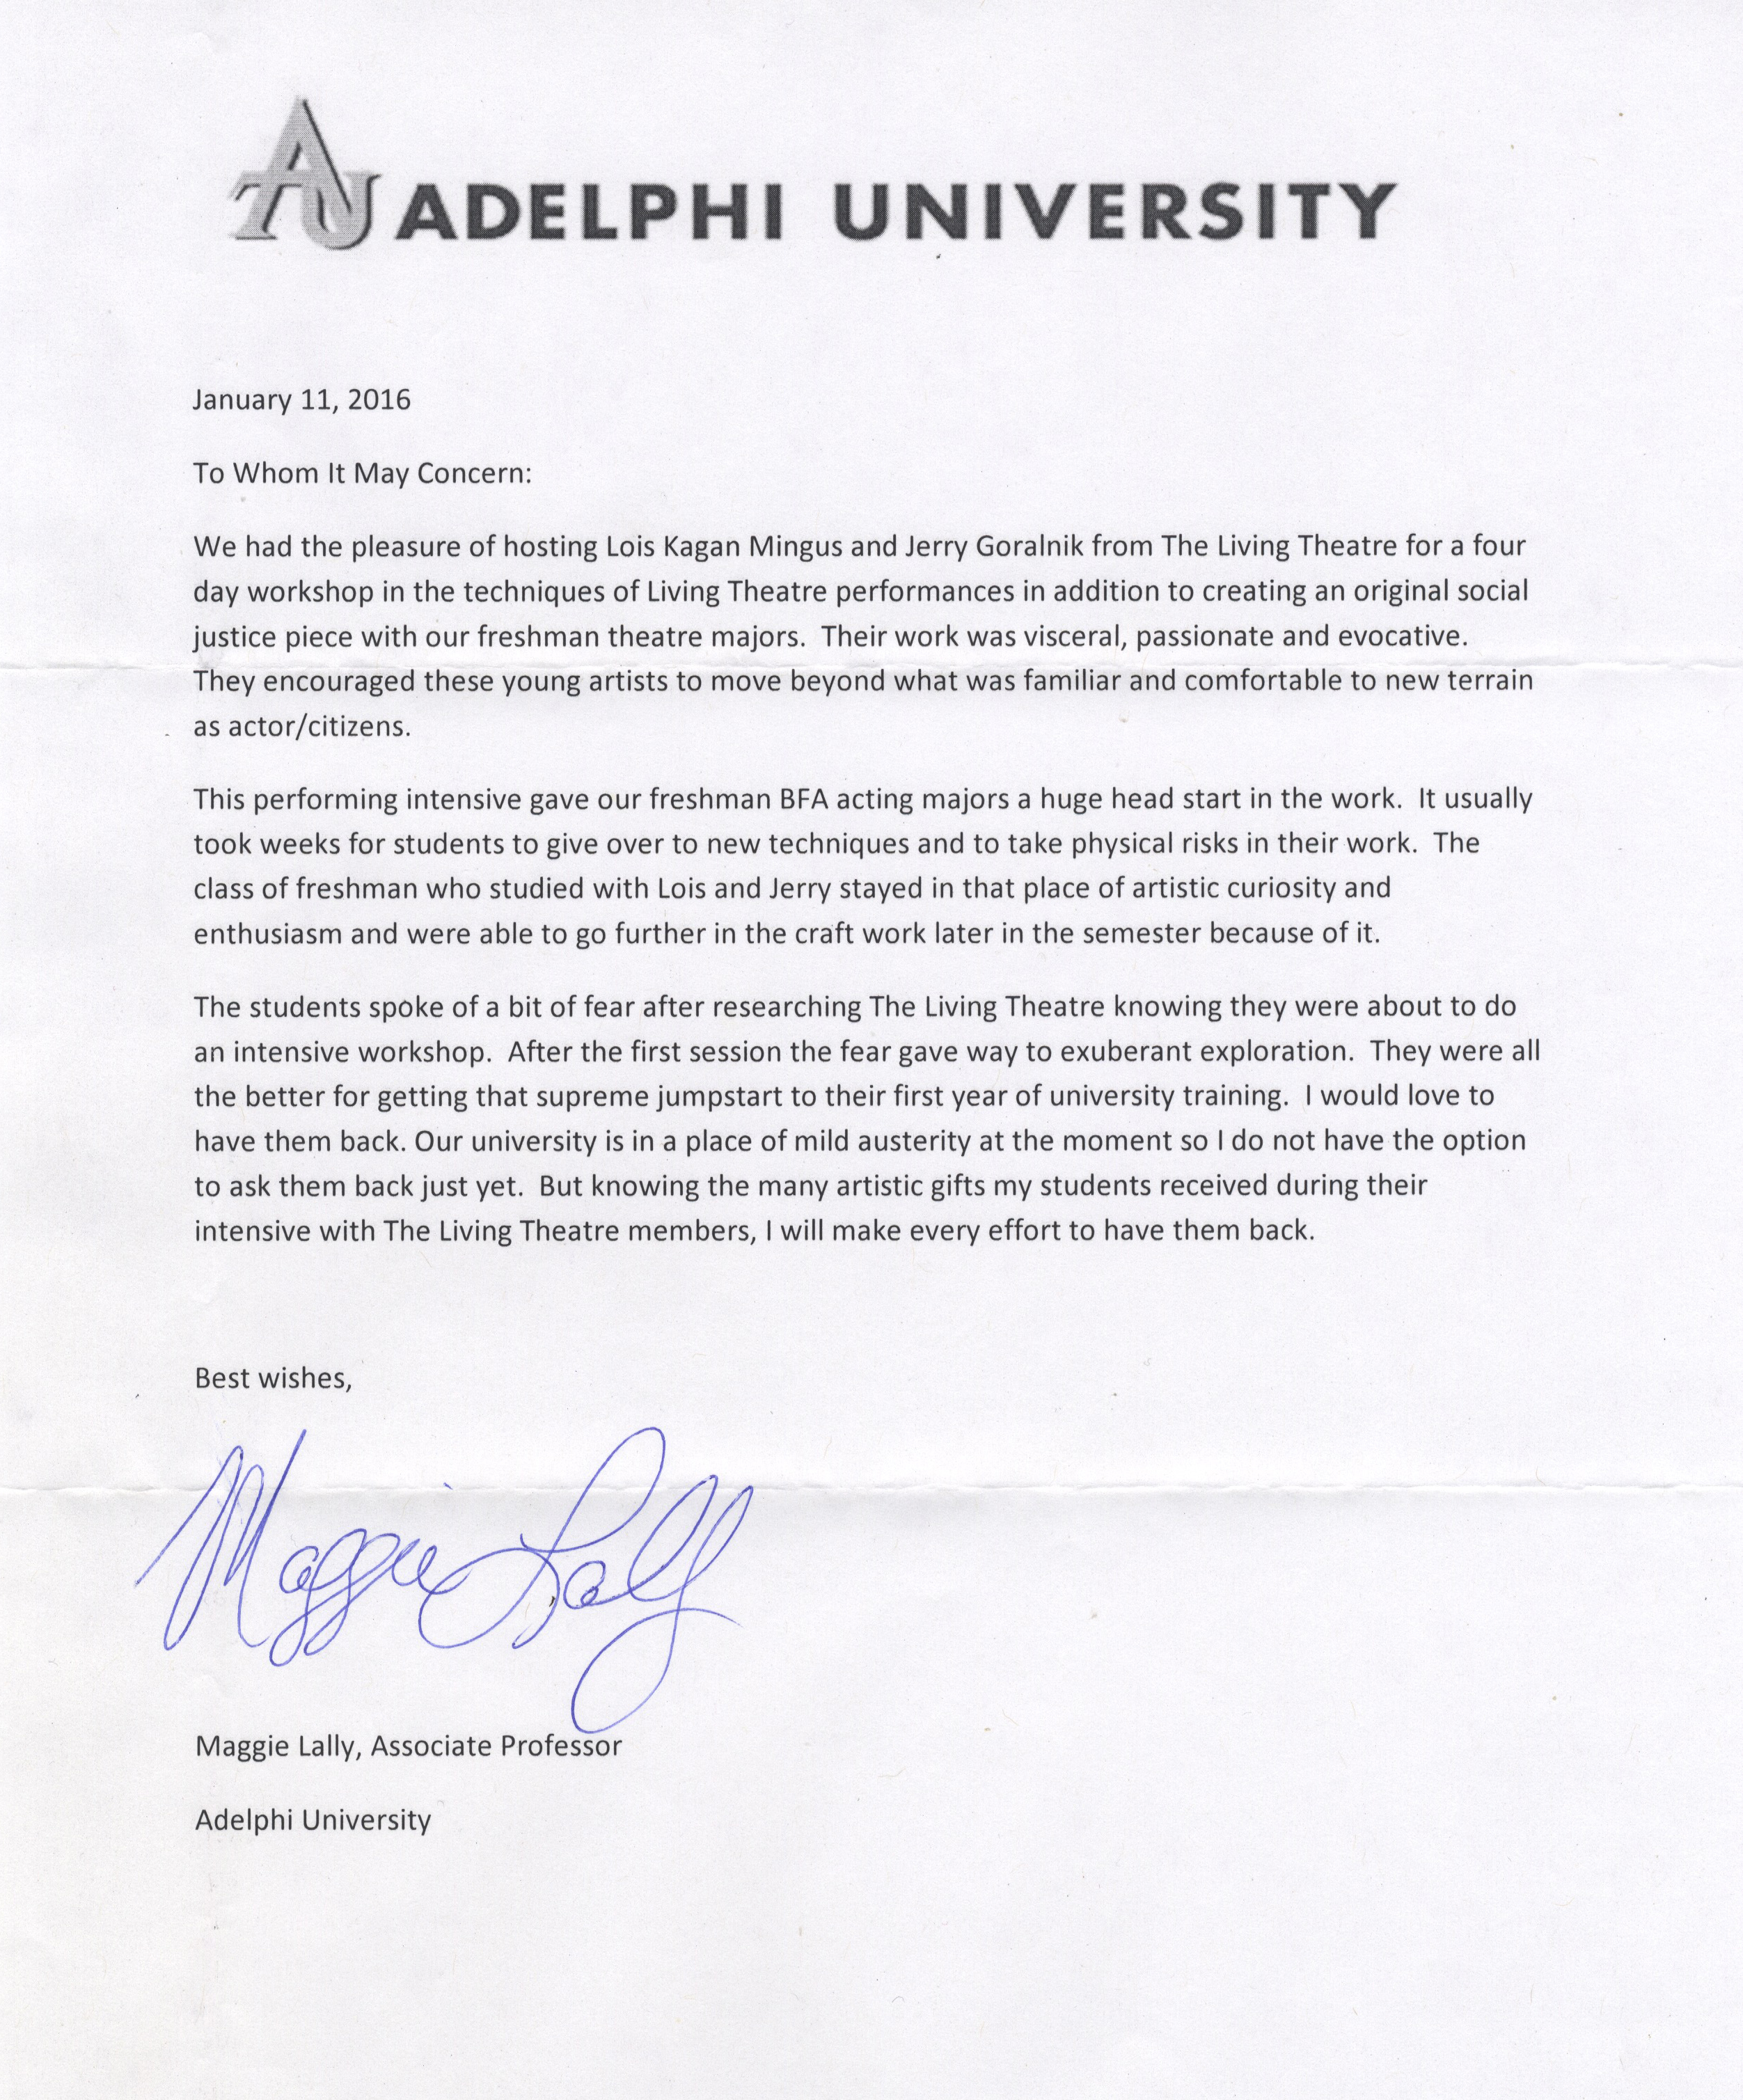 university of new hampshire letter of recommendation